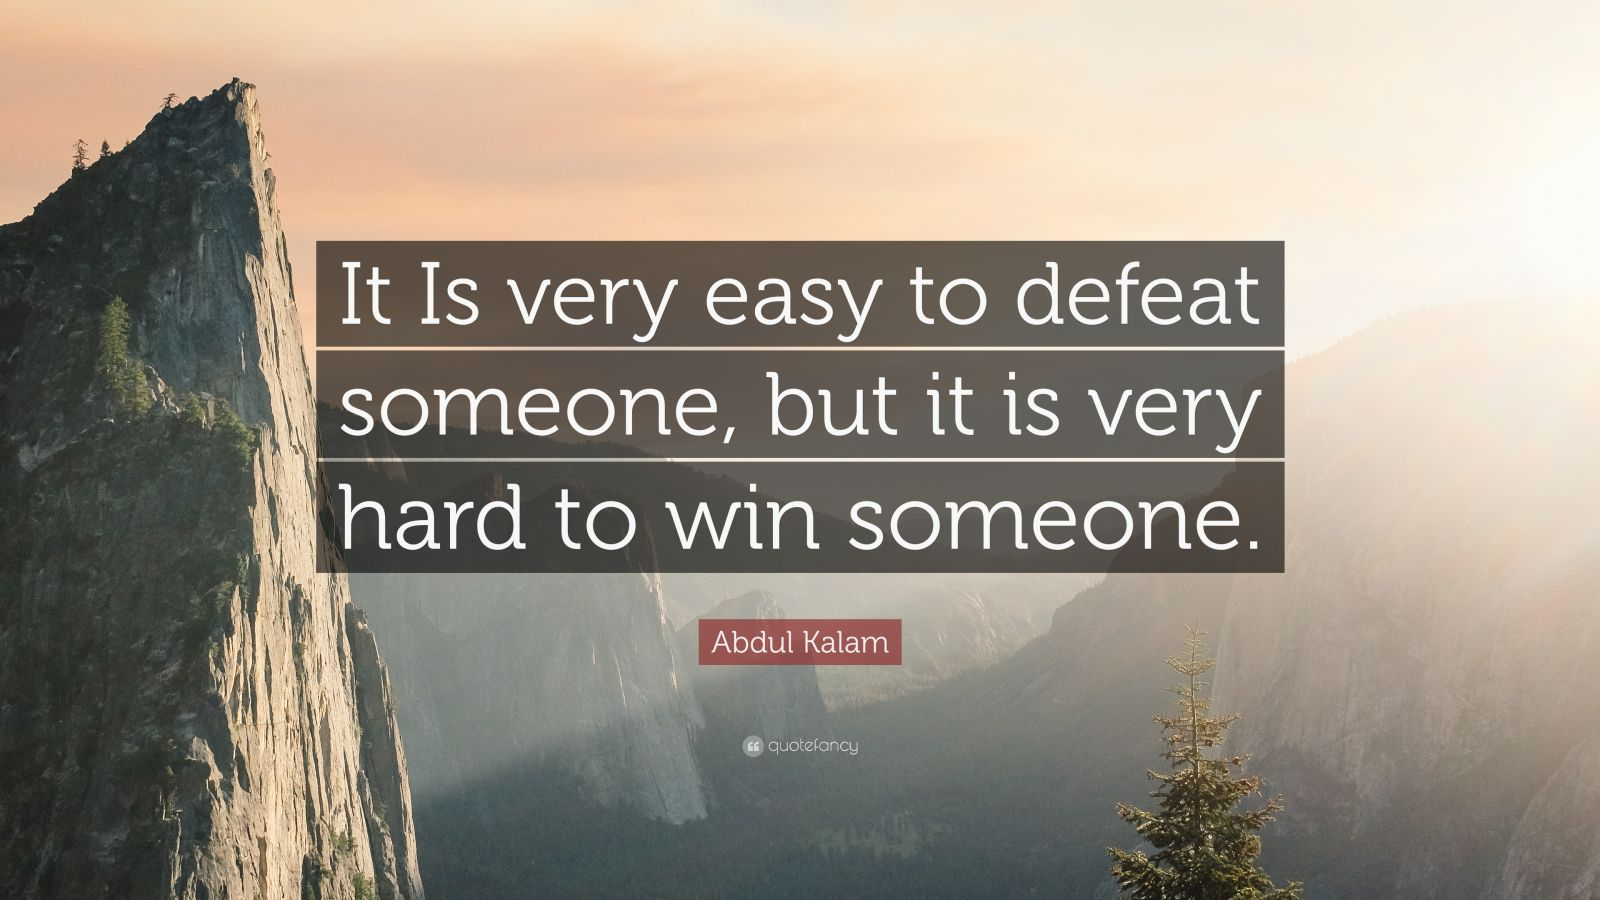 """Abdul Kalam Quote: """"It Is very easy to defeat someone, but it is very hard to win someone."""""""